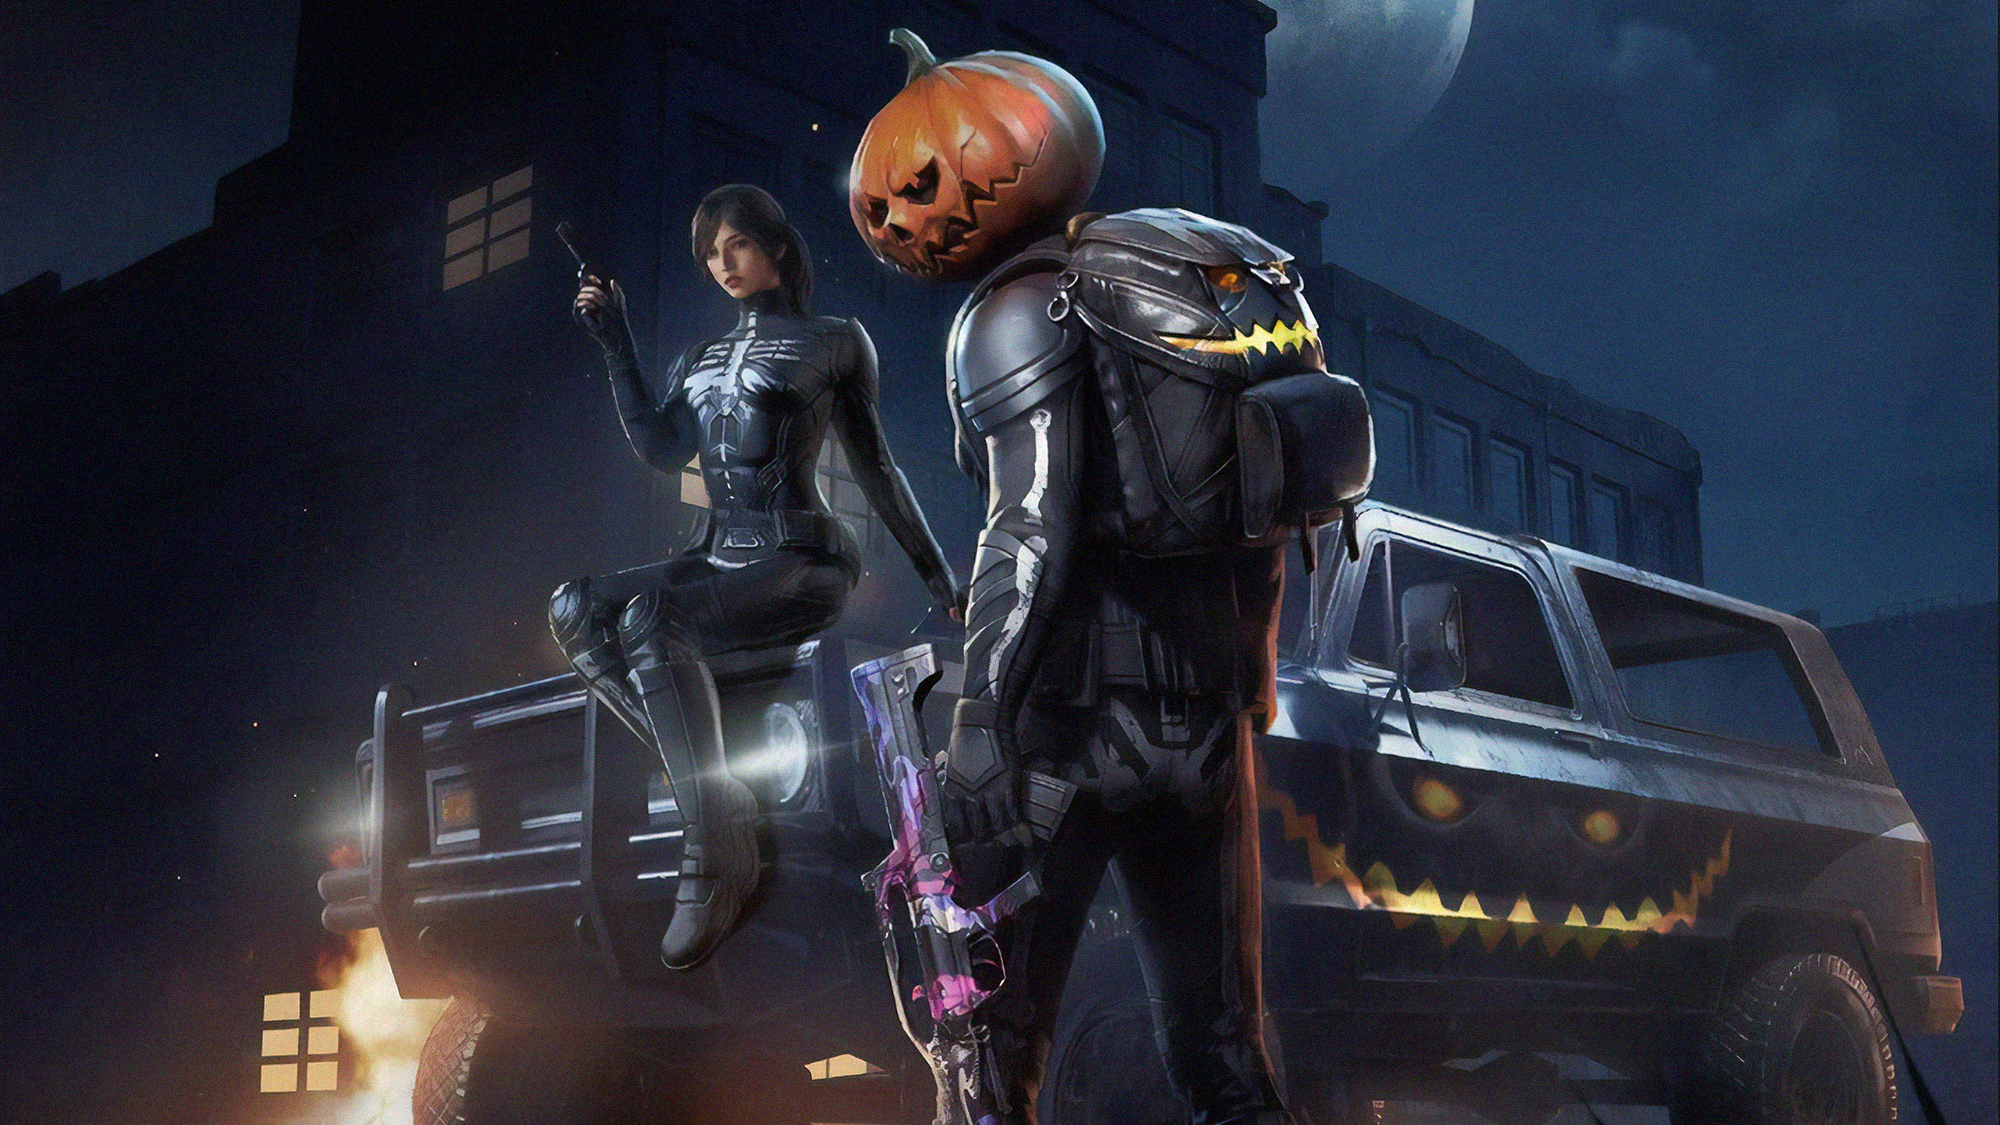 1920x1080 Pubg Halloween Laptop Full Hd 1080p Hd 4k Wallpapers Images Backgrounds Photos And Pictures